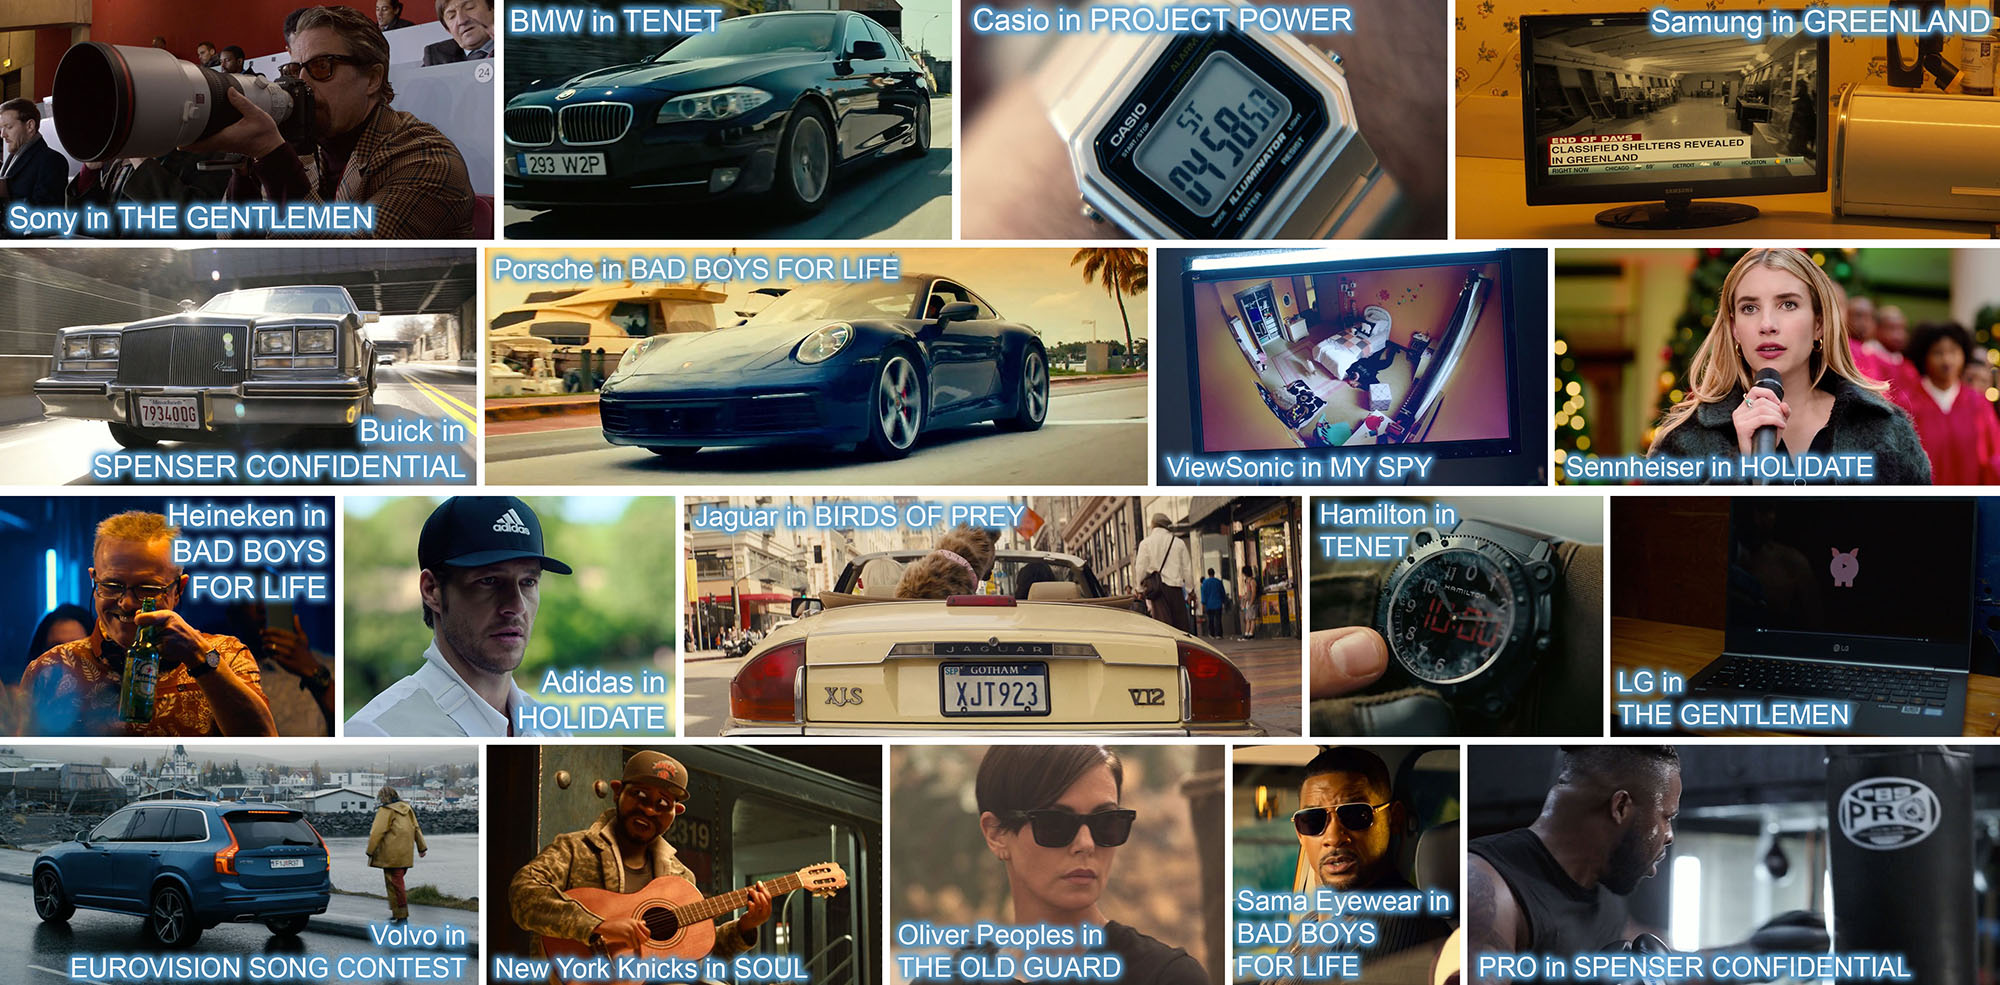 concave brand tracking product placement top 100 brands in 2020 movies top 10 entertainment marketing, Sony in the gentlemen, Porsche in Bad Boys for life, Casio in project power, Samsung TV in Greenland, Buick in Spenser confidential, BMW in Tenet, Viewsonic in my spy, Sennheiser in Holiday, Heineken in Bad boys for life, Adidas in the holidate, jaguar in birds of prey, Hamilton in Tenet, LG in The Gentlemen, Volvo in Eurovision song contest, New York Knicks cap in Soul, Oliver Peoples sunglasses in The Old Guard, Sama Eyewear in Bad boys for life